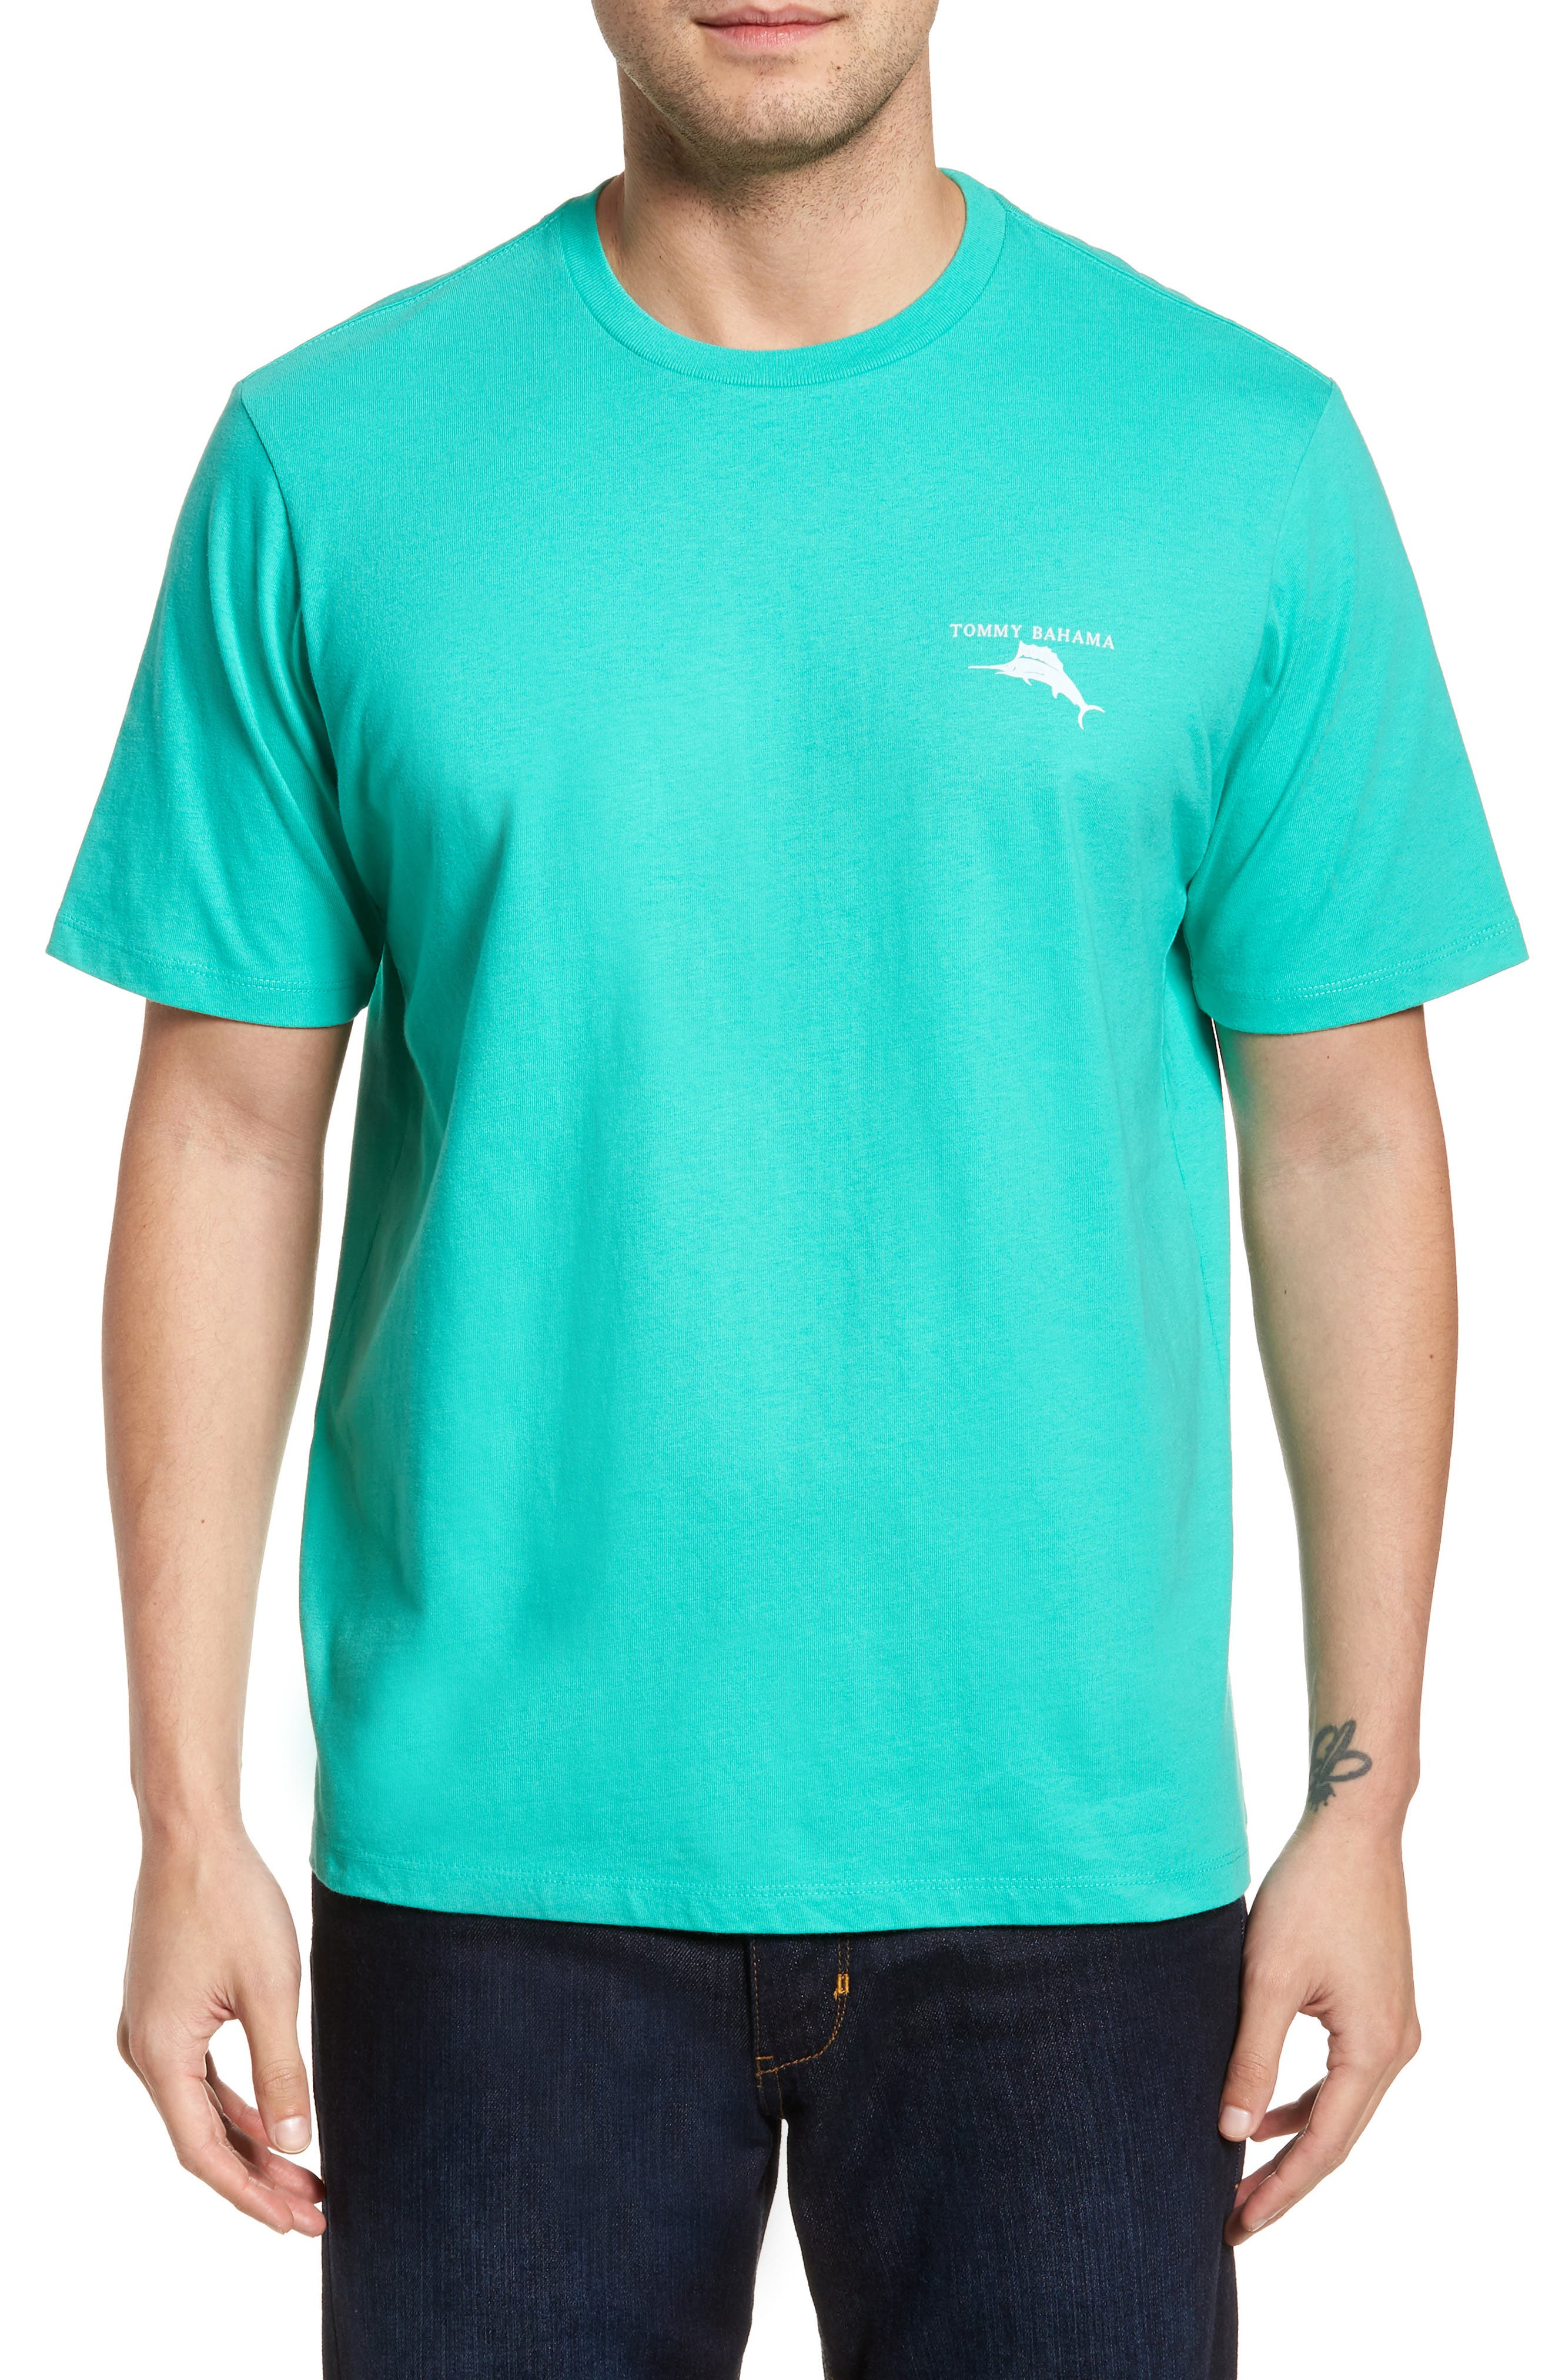 Keys to Happiness T-Shirt,                         Main,                         color, 300